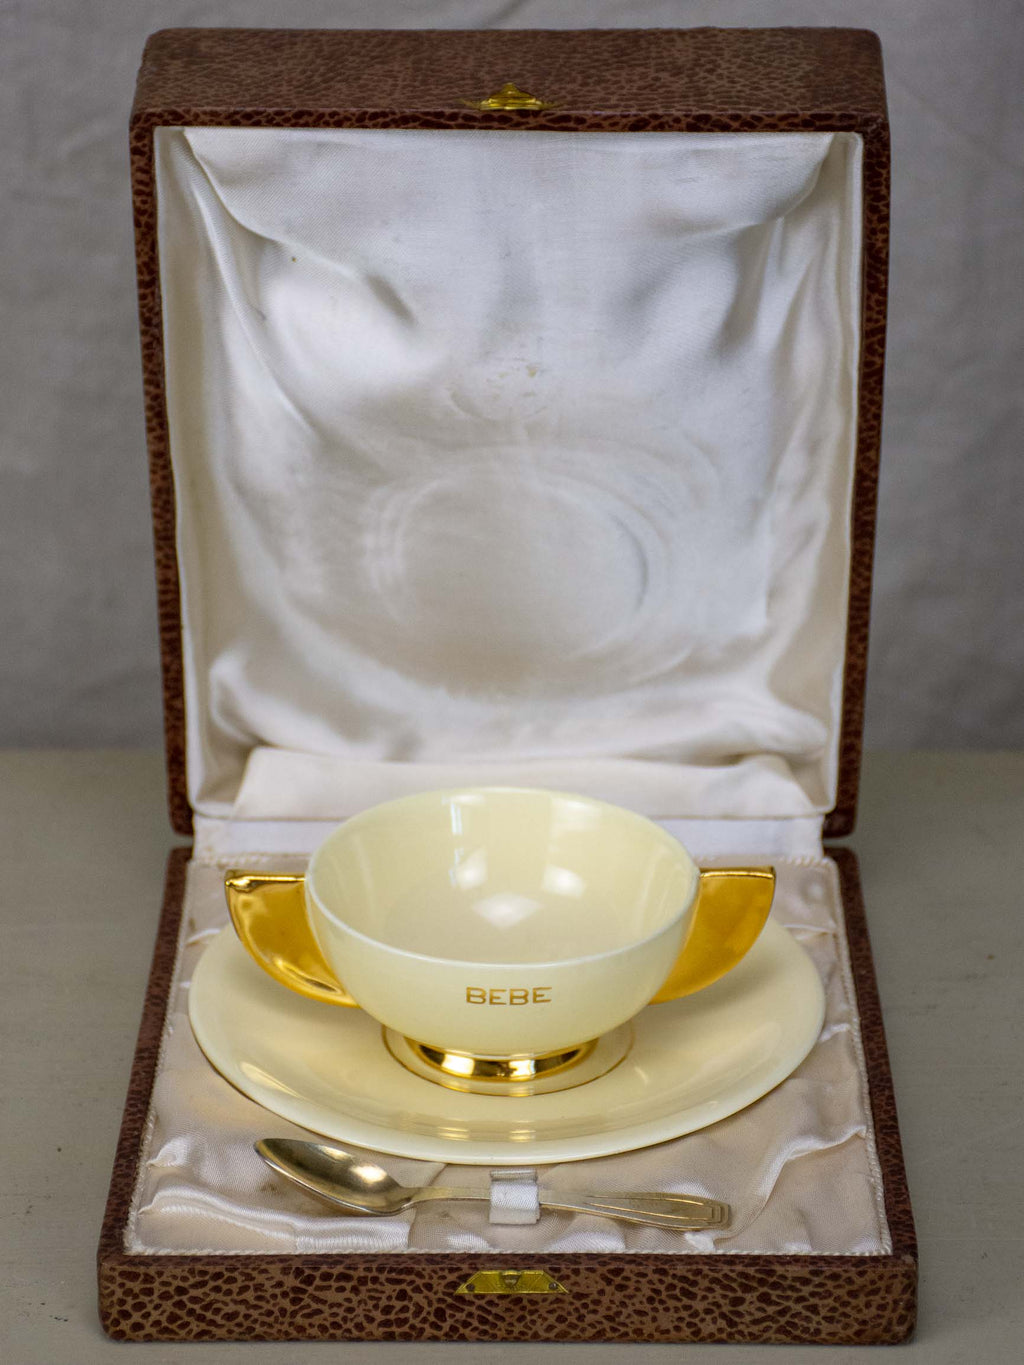 Robj Paris 'Bebe' cup, saucer and spoon in original box